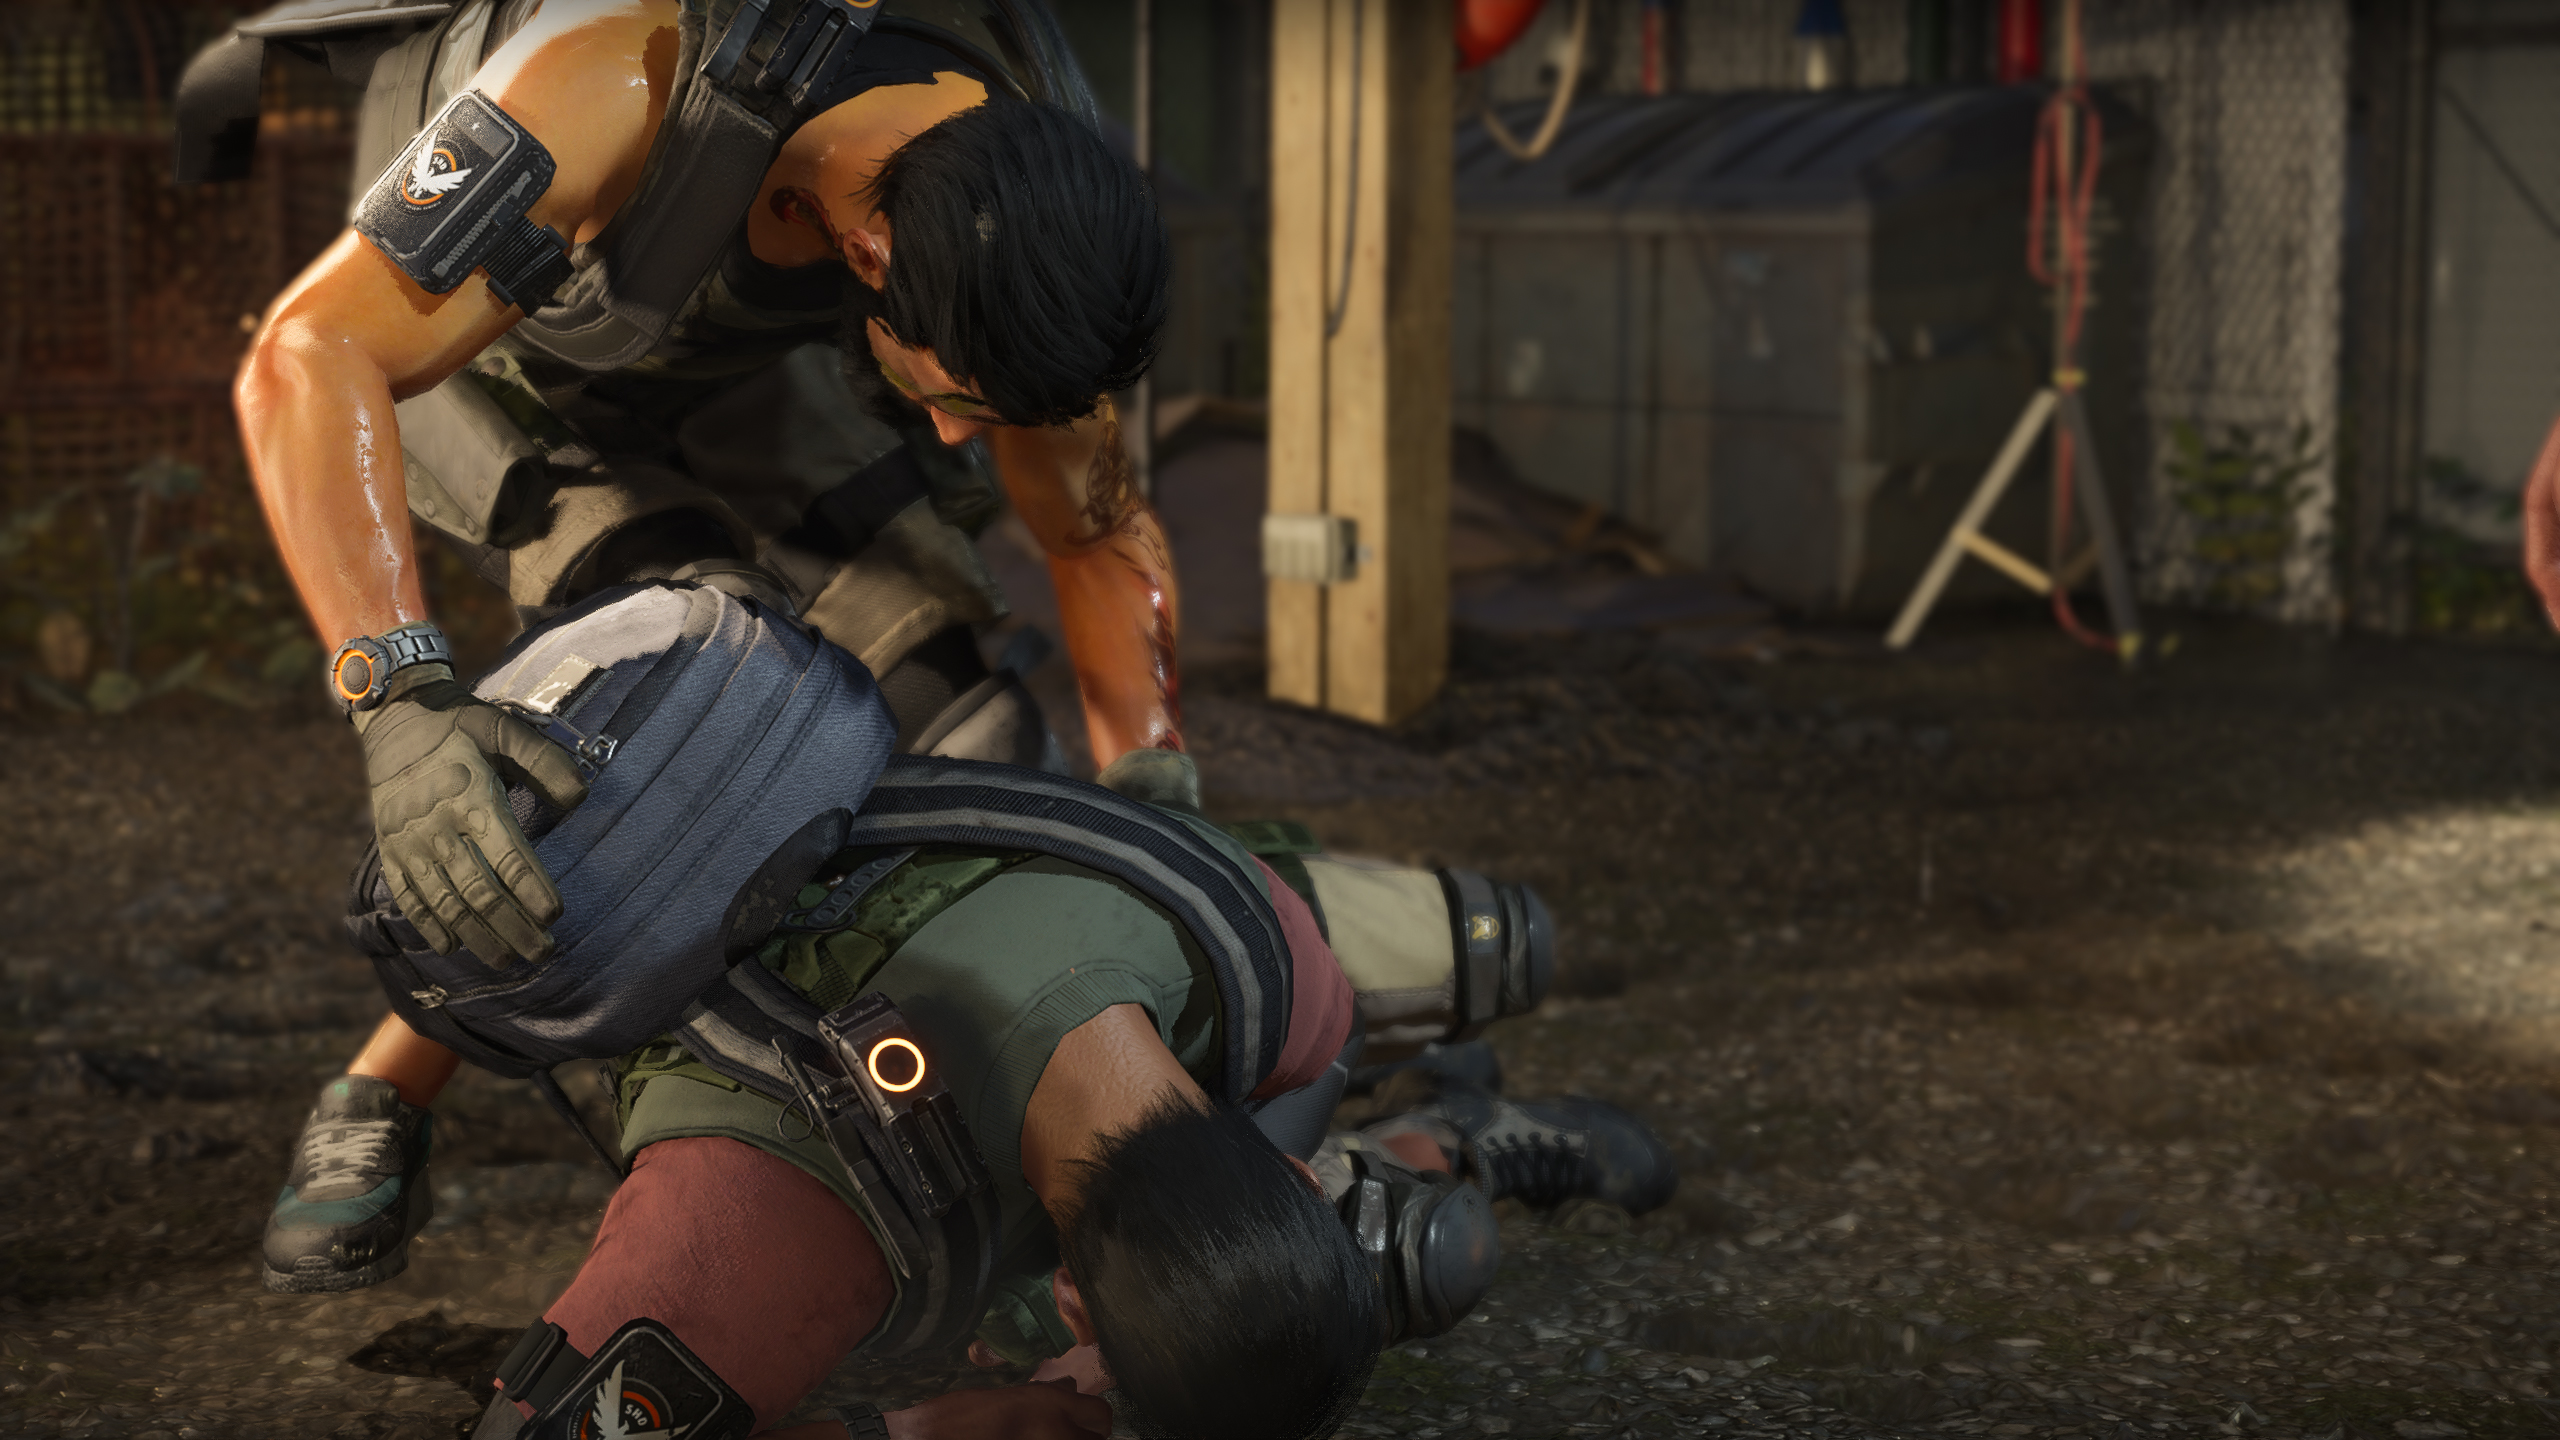 image 38489, galerie Comparatif de performances dans The Division 2